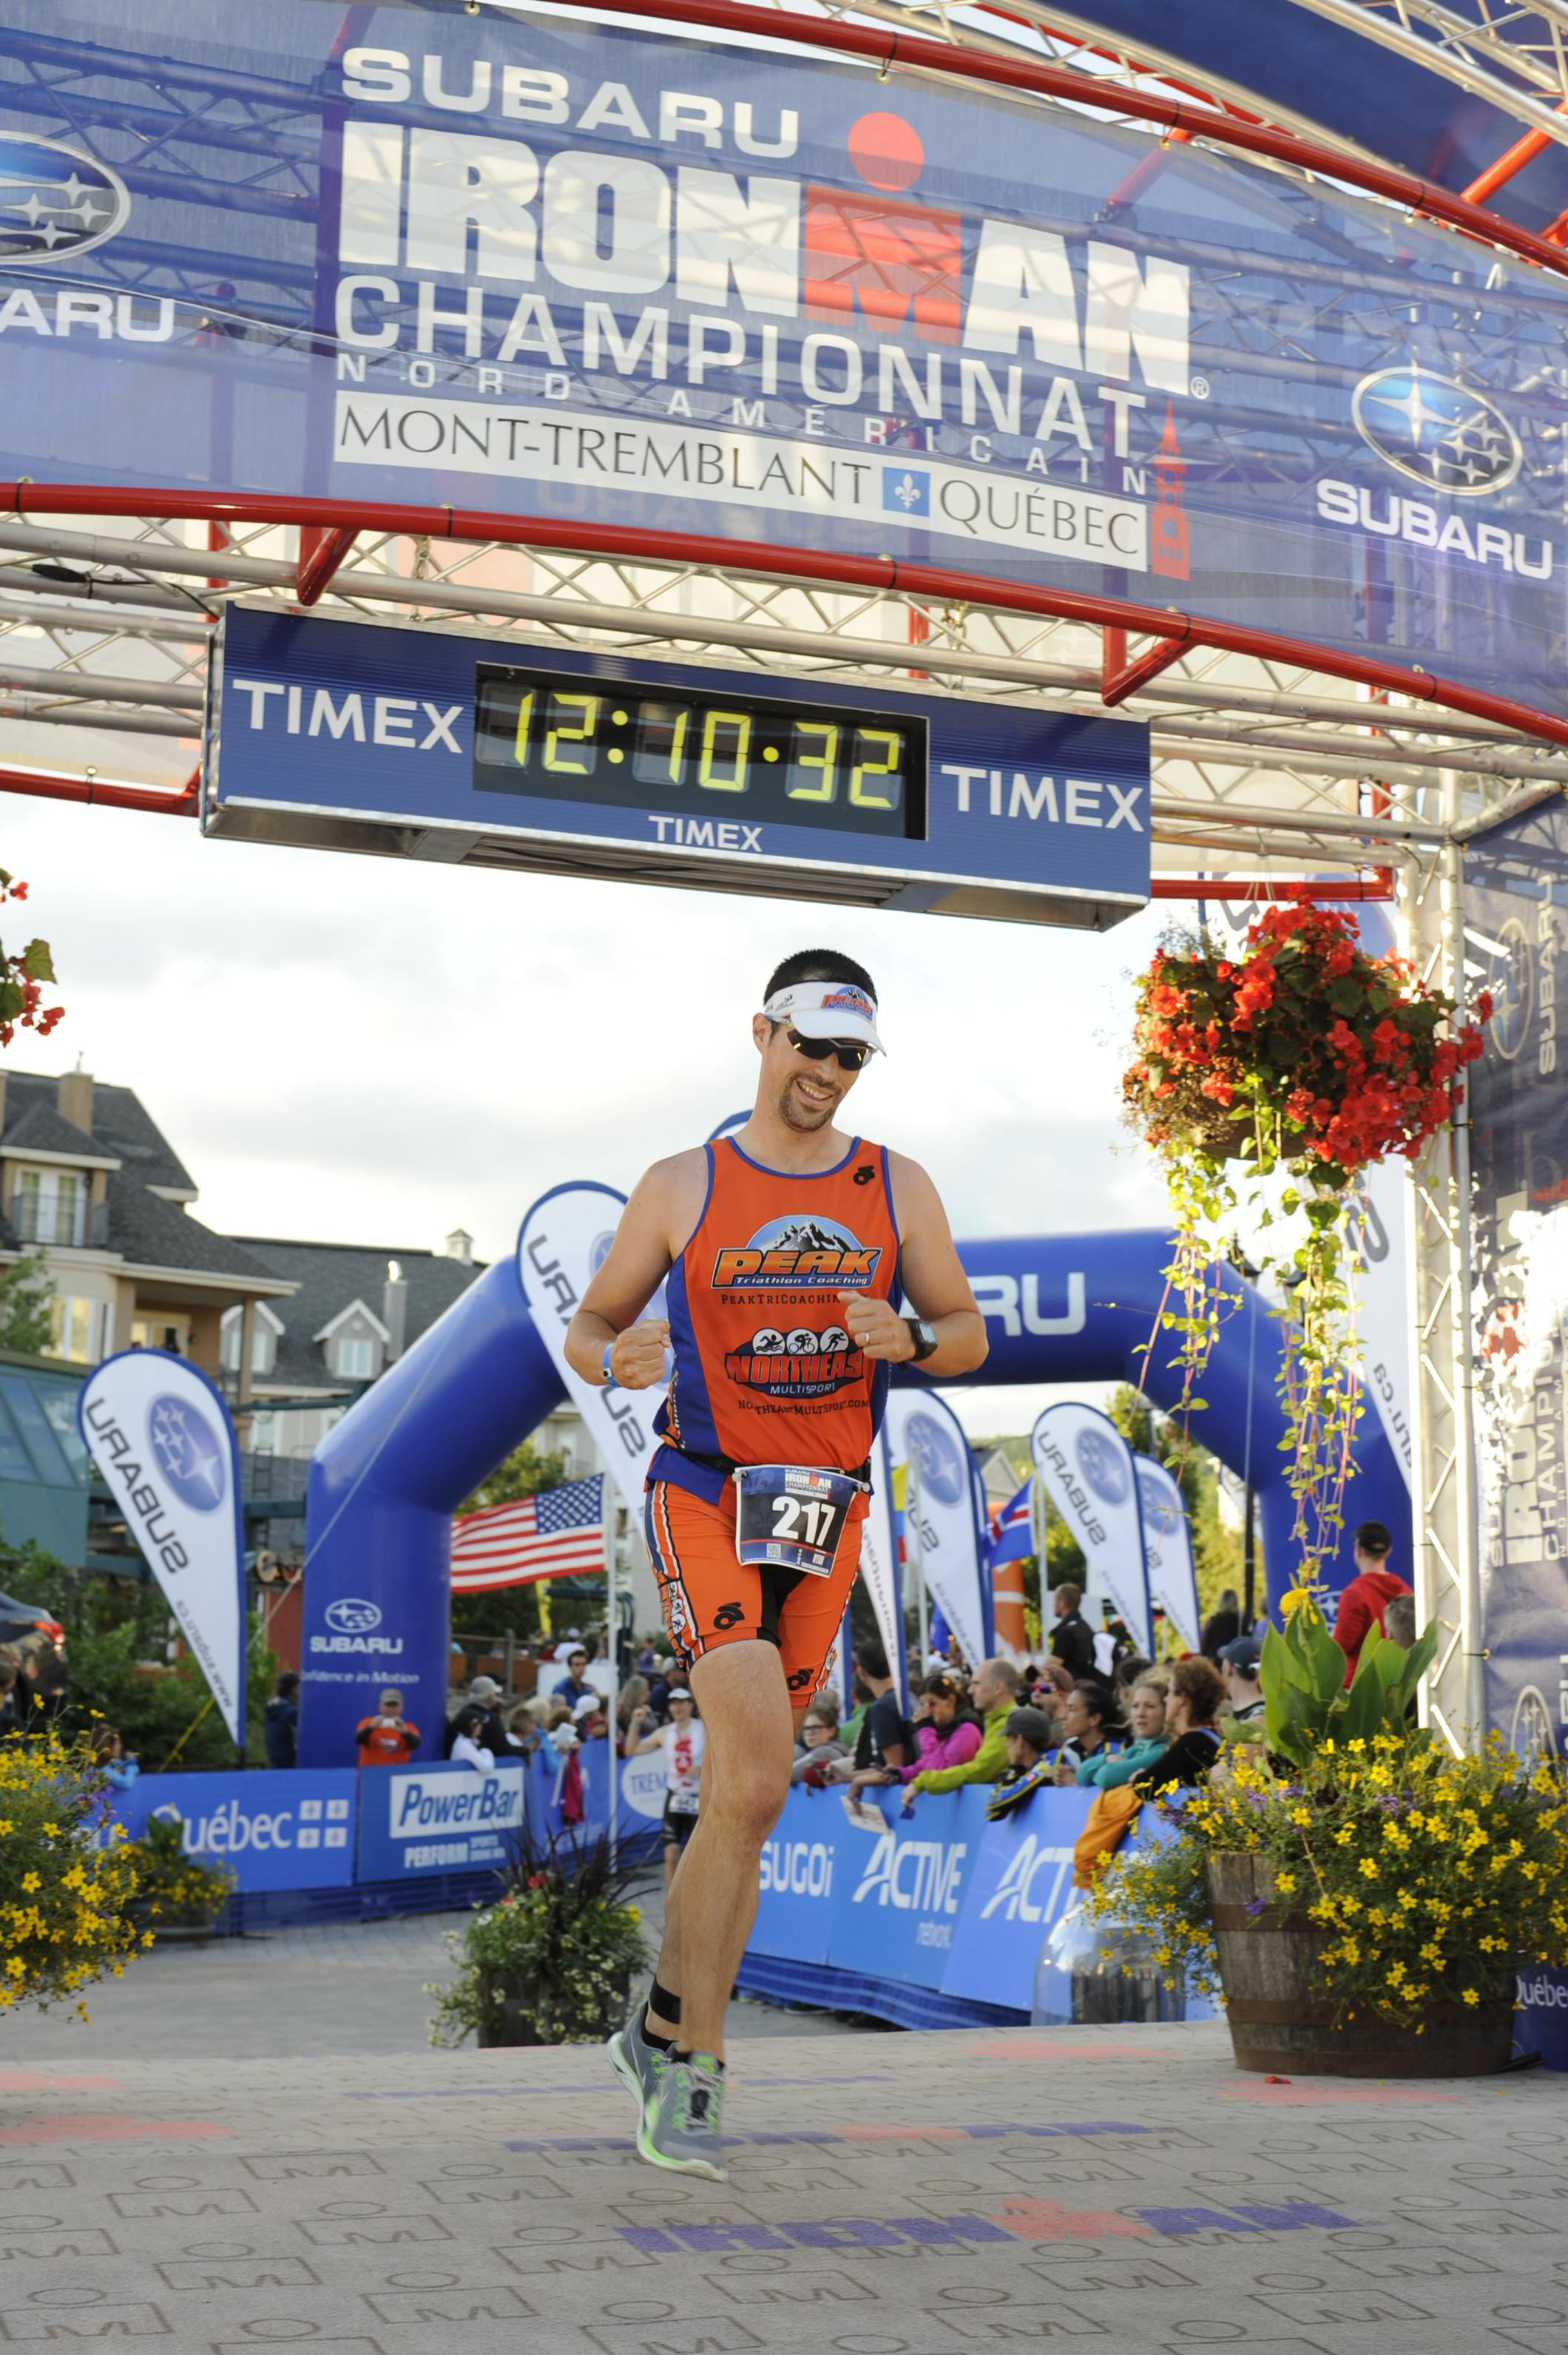 Ryan finishing his first Ironman